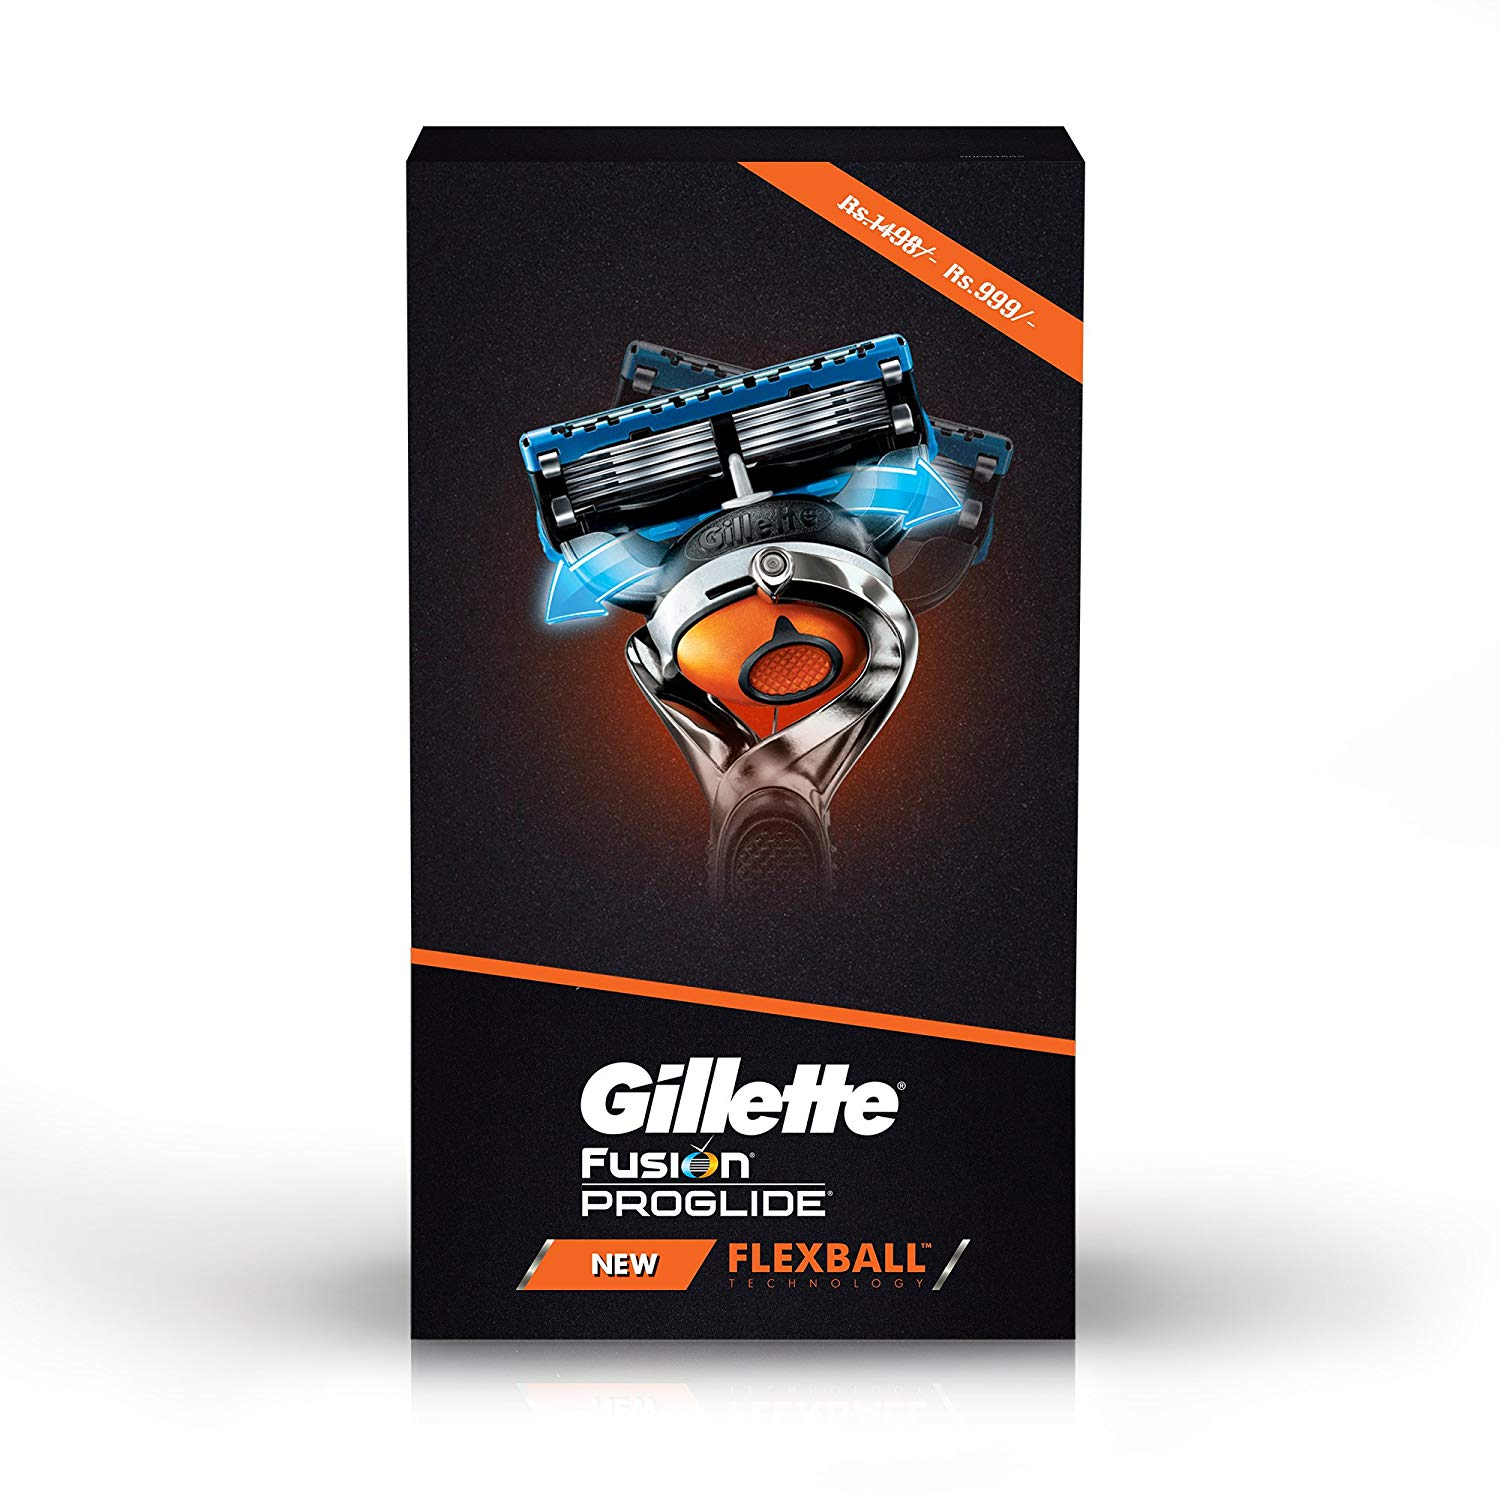 Gillette Flexball Pro Glide Gift Pack and Flexball Razor with 4 Flexball Cartridge